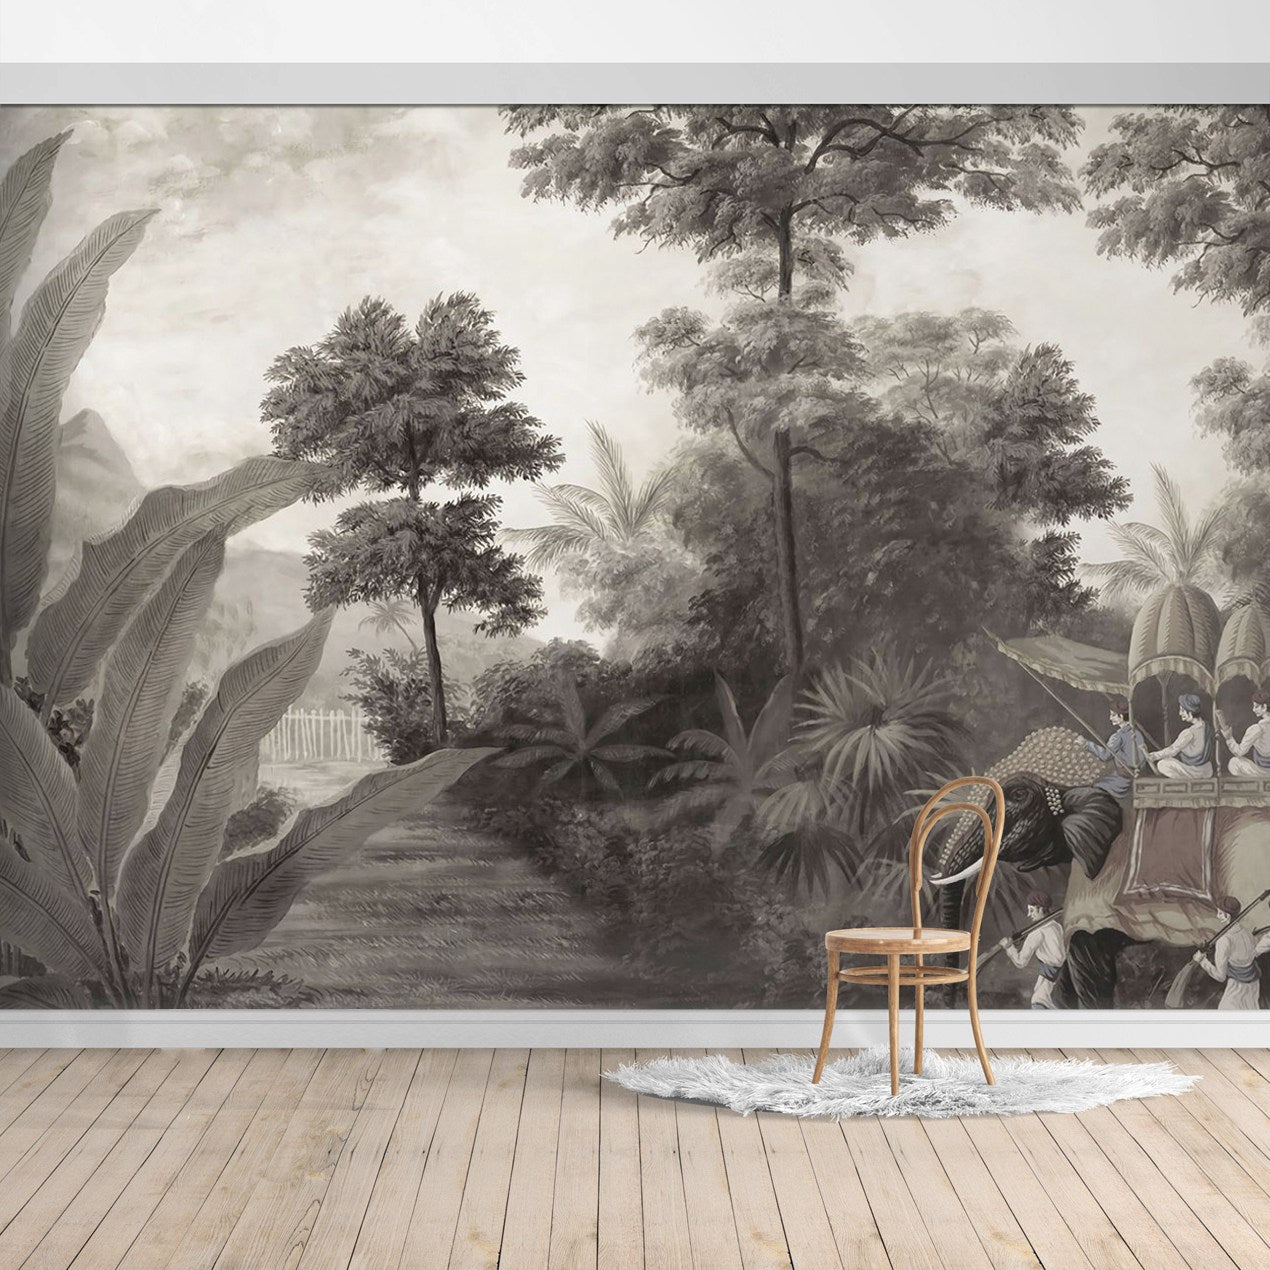 PW190524014203 Hawaiian style Jungle design Mural for bedroom or dinning room by SJK